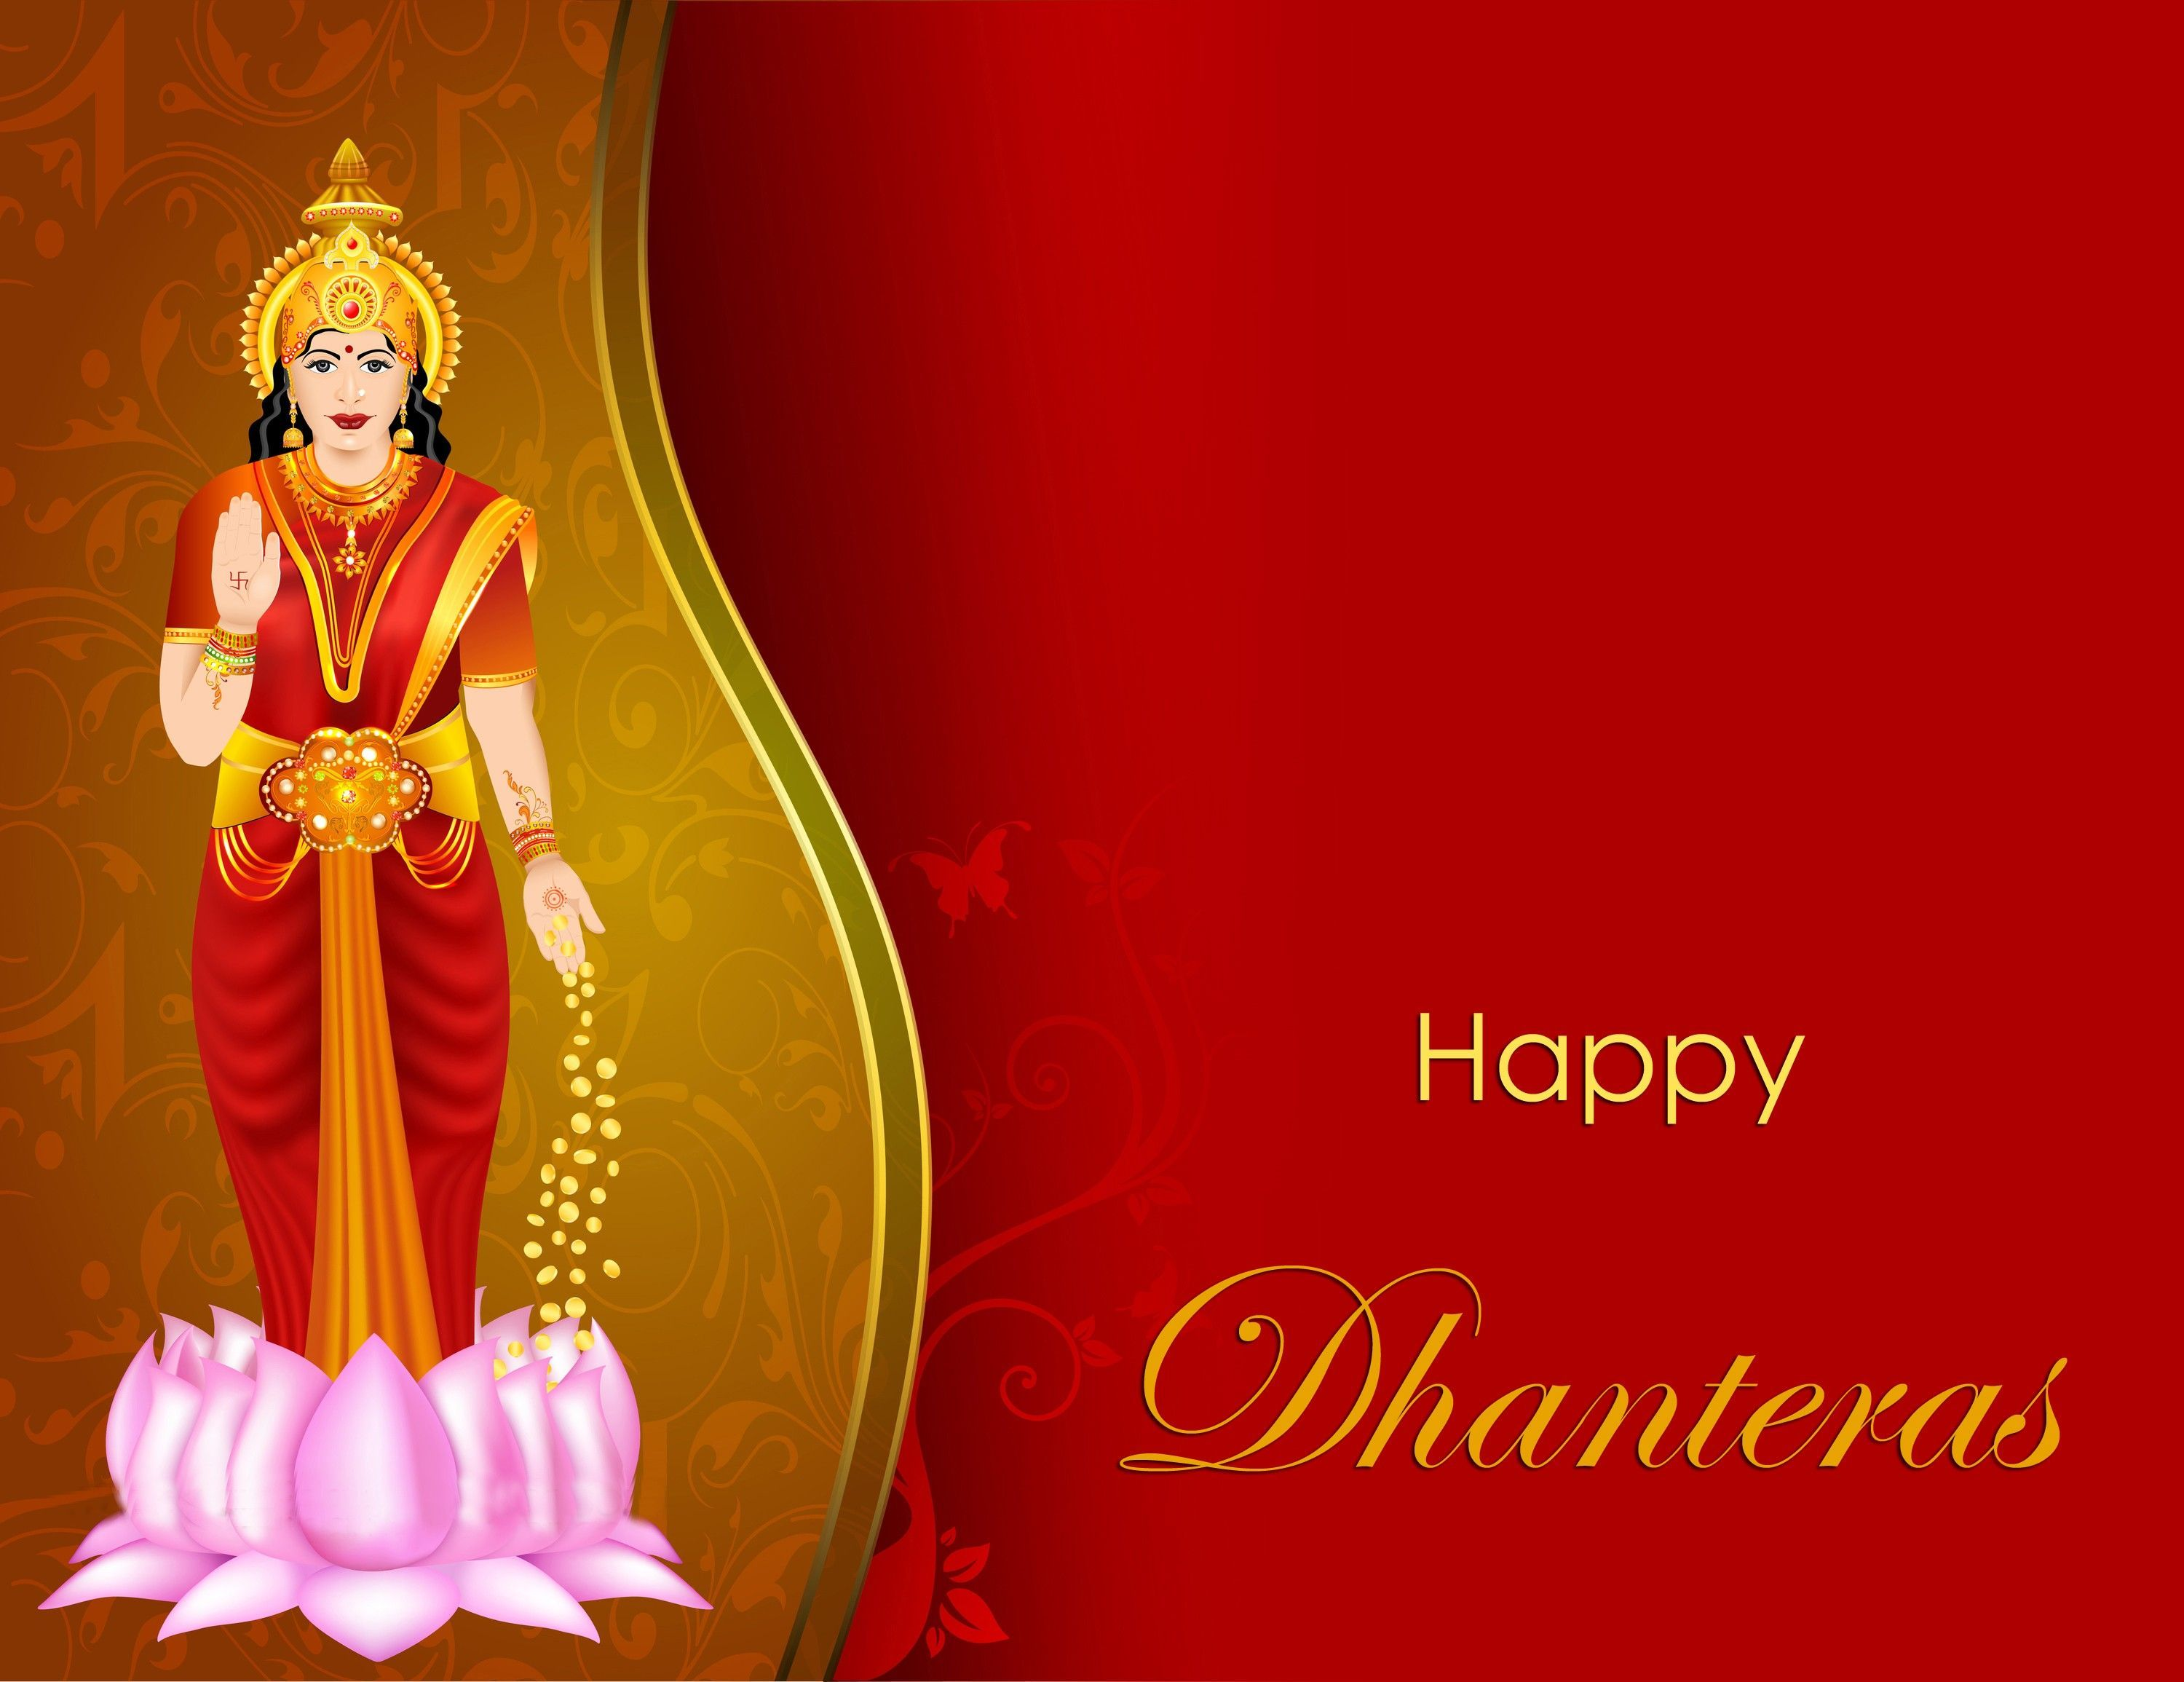 Dhanteras 2016 Images, Wallpapers and Photos Free Download Deepavali which is really important festival for we Indians gets started from Dhanteras or Dhan Trayodashi. Dhanteras which is combination of two words Dhan and Teras simply shows the wealth related growth and wellness too, this occasion also known as Dhanwantari Triodasi in different regions of India. #2016 Dhanteras photos #Dhanteras 2016 images #Dhanteras wishes #free images 2016 Dhanteras #wallpaper Dhant #dhanteraswishes Dhanteras 2 #dhanteraswishes